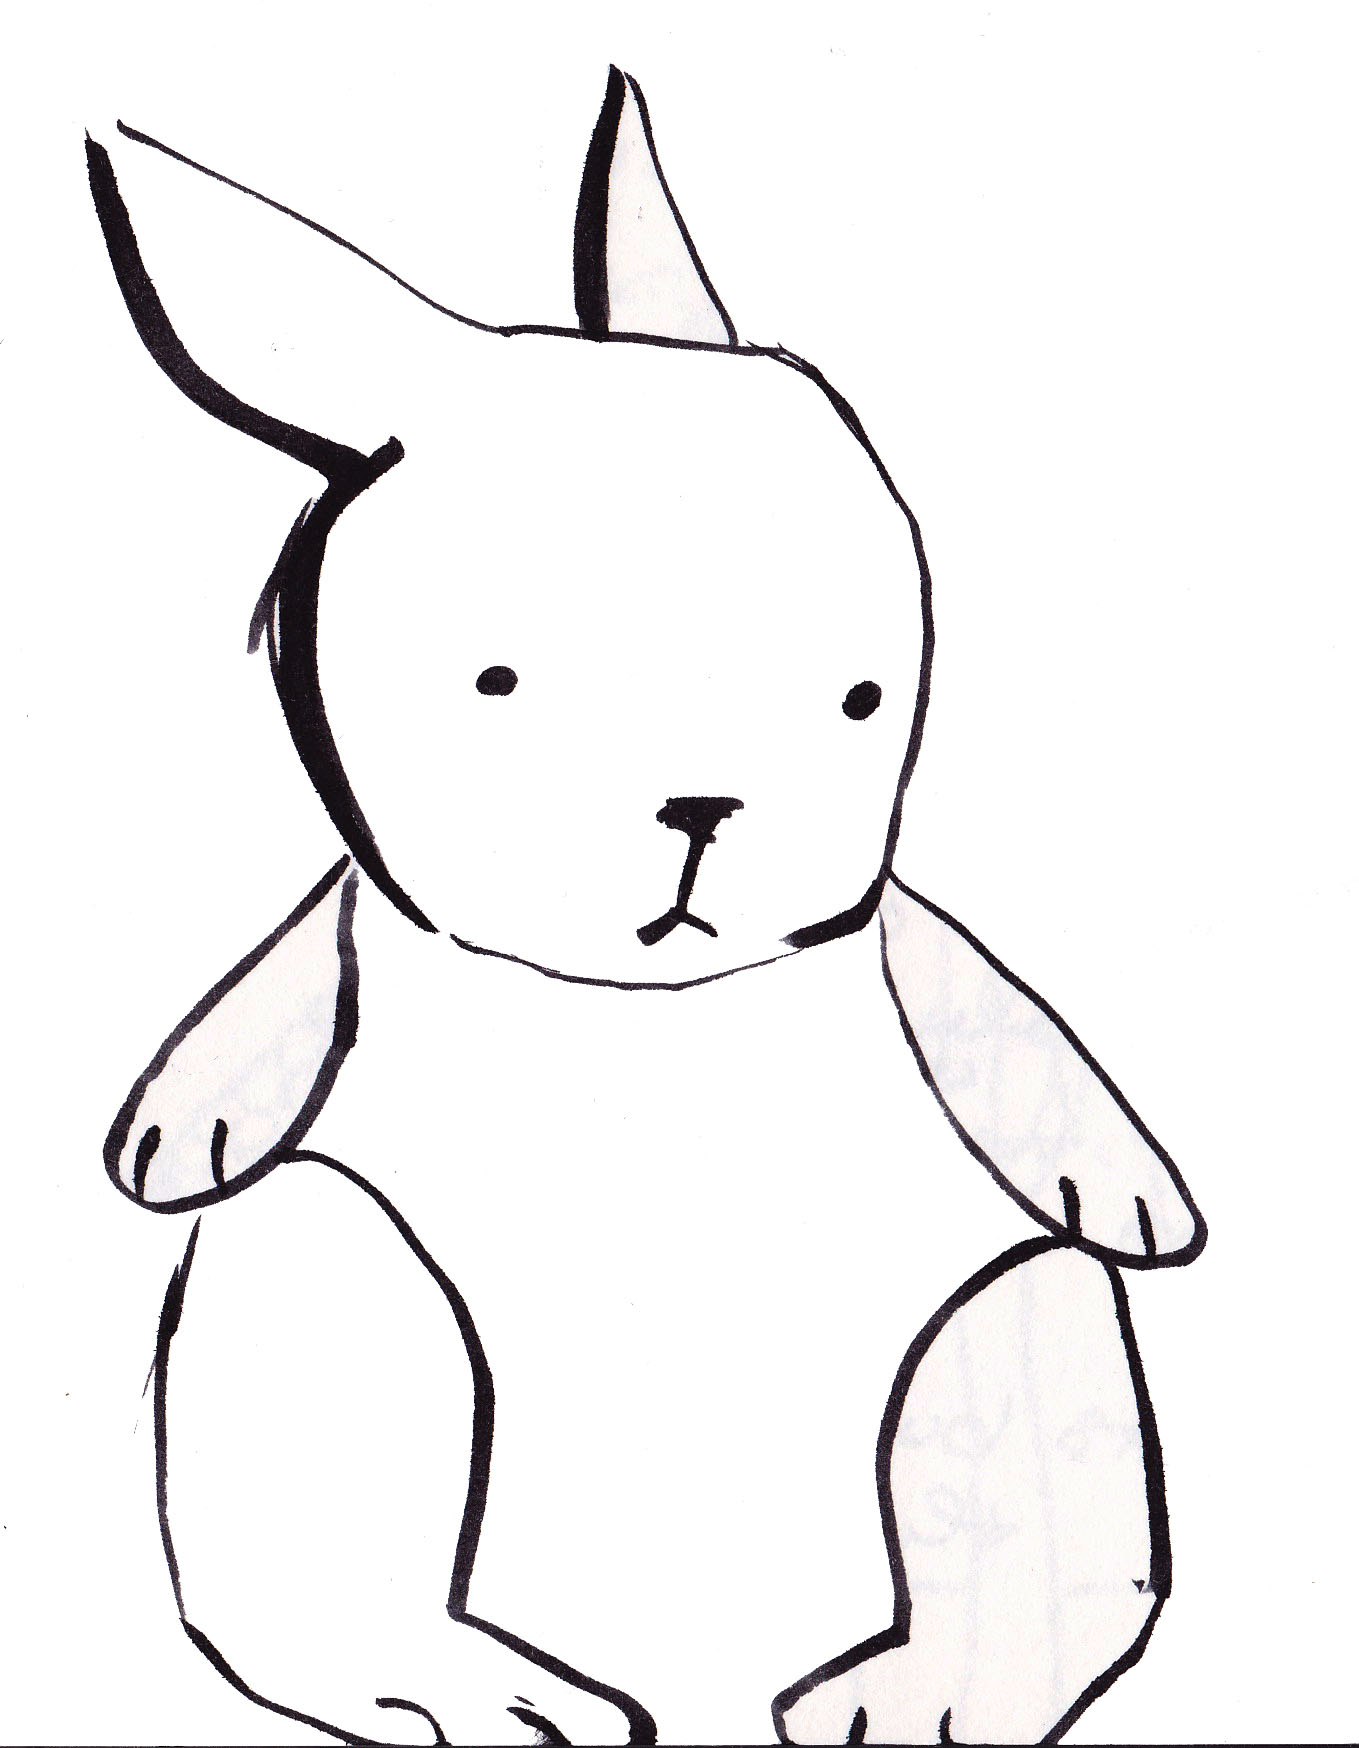 Line Drawings Of Cute Animals : Bunny line drawing clipart best